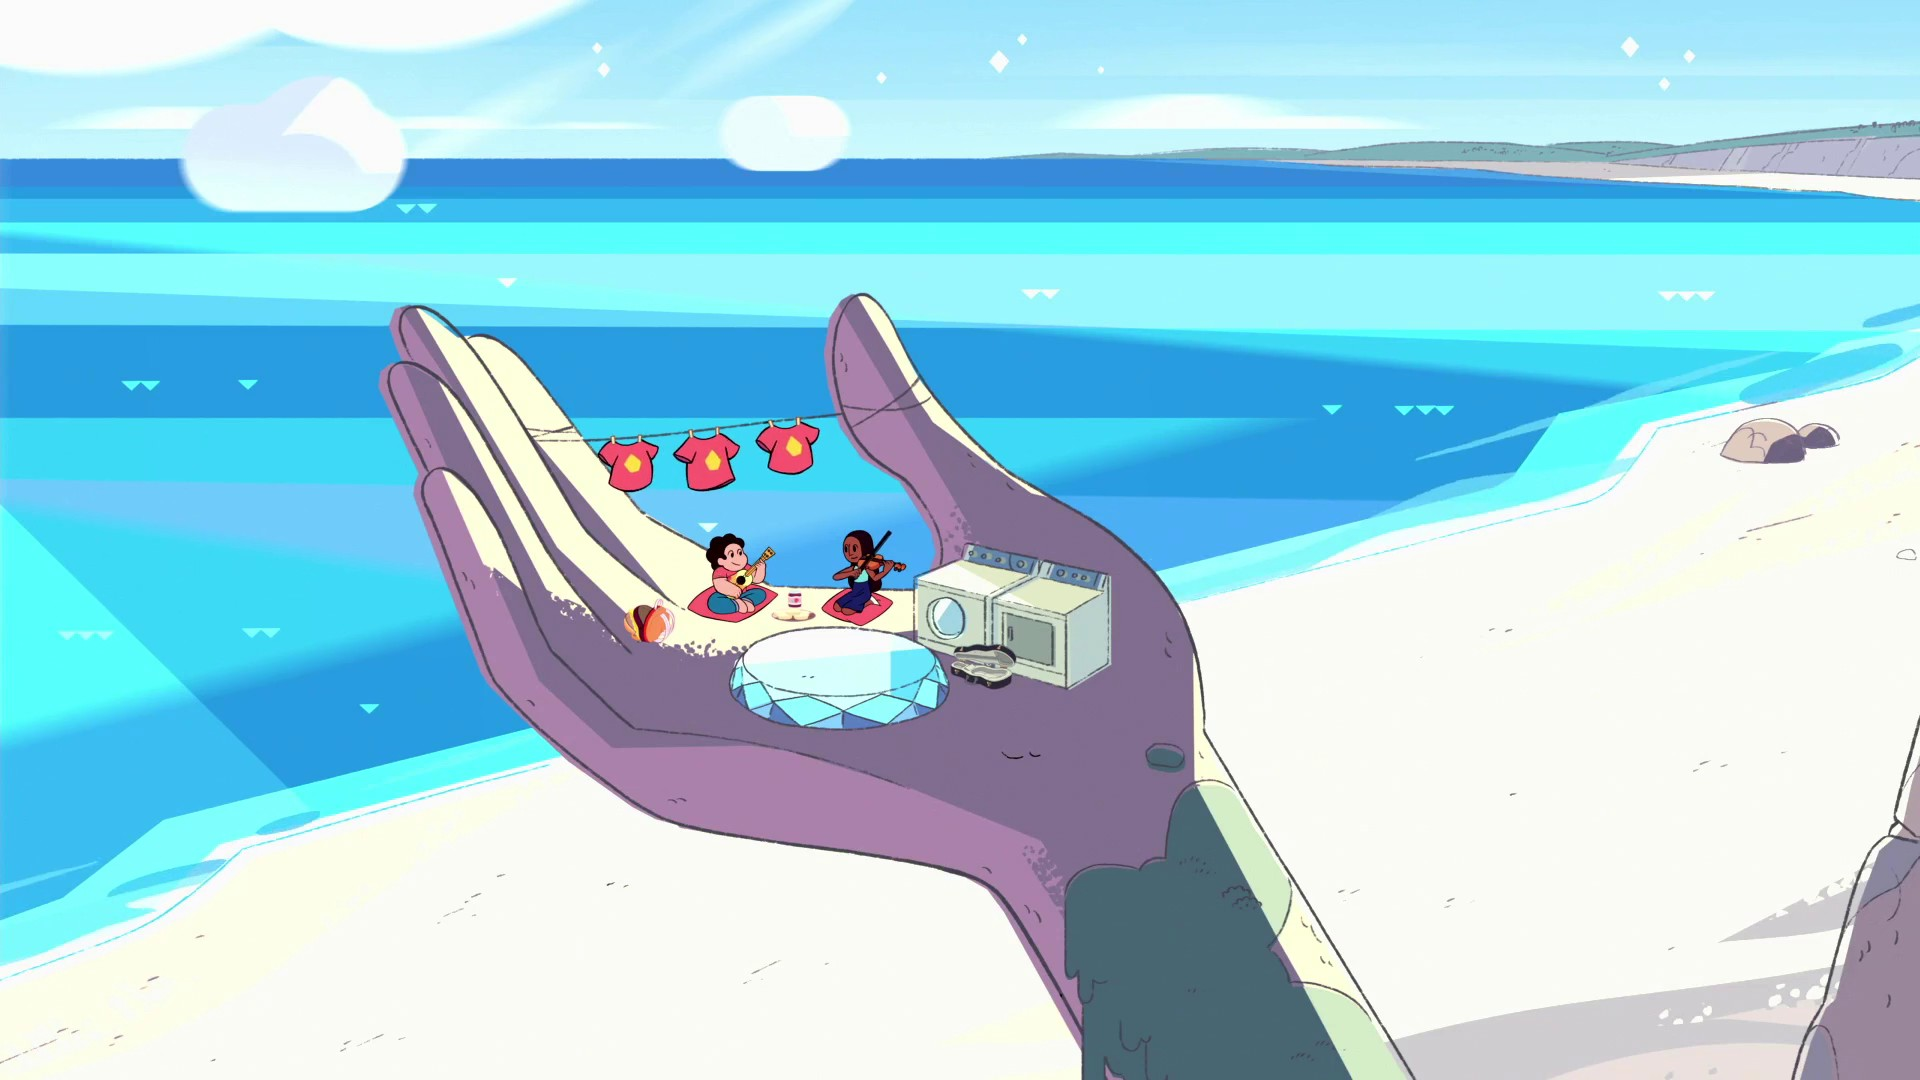 Anime Fall Wallpaper Steven Universe Wallpaper 183 ① Download Free High Resolution